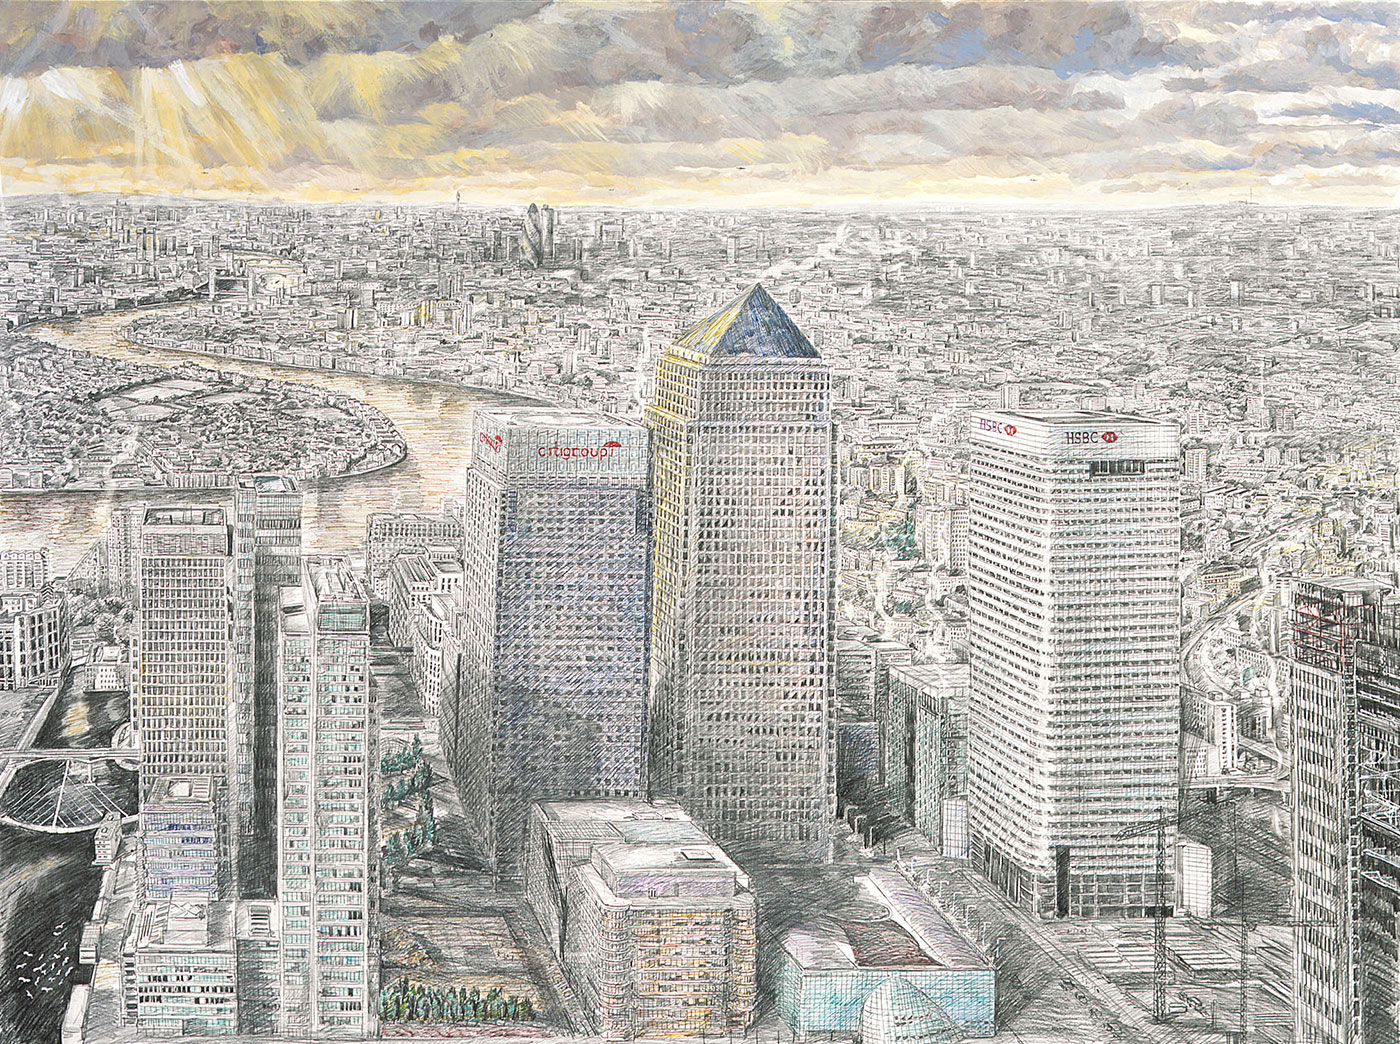 London Seen - The City In A New Light Exhibition